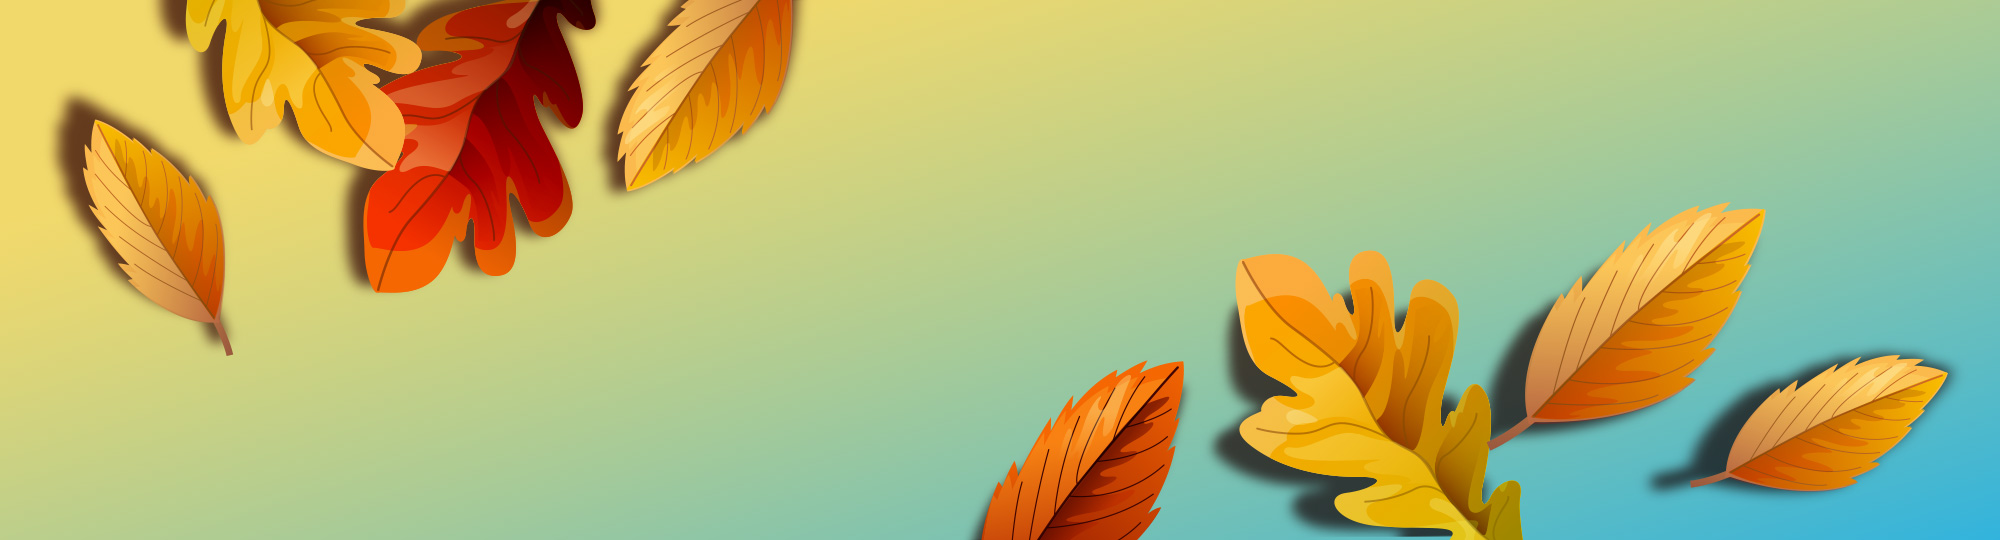 Fall promotion background